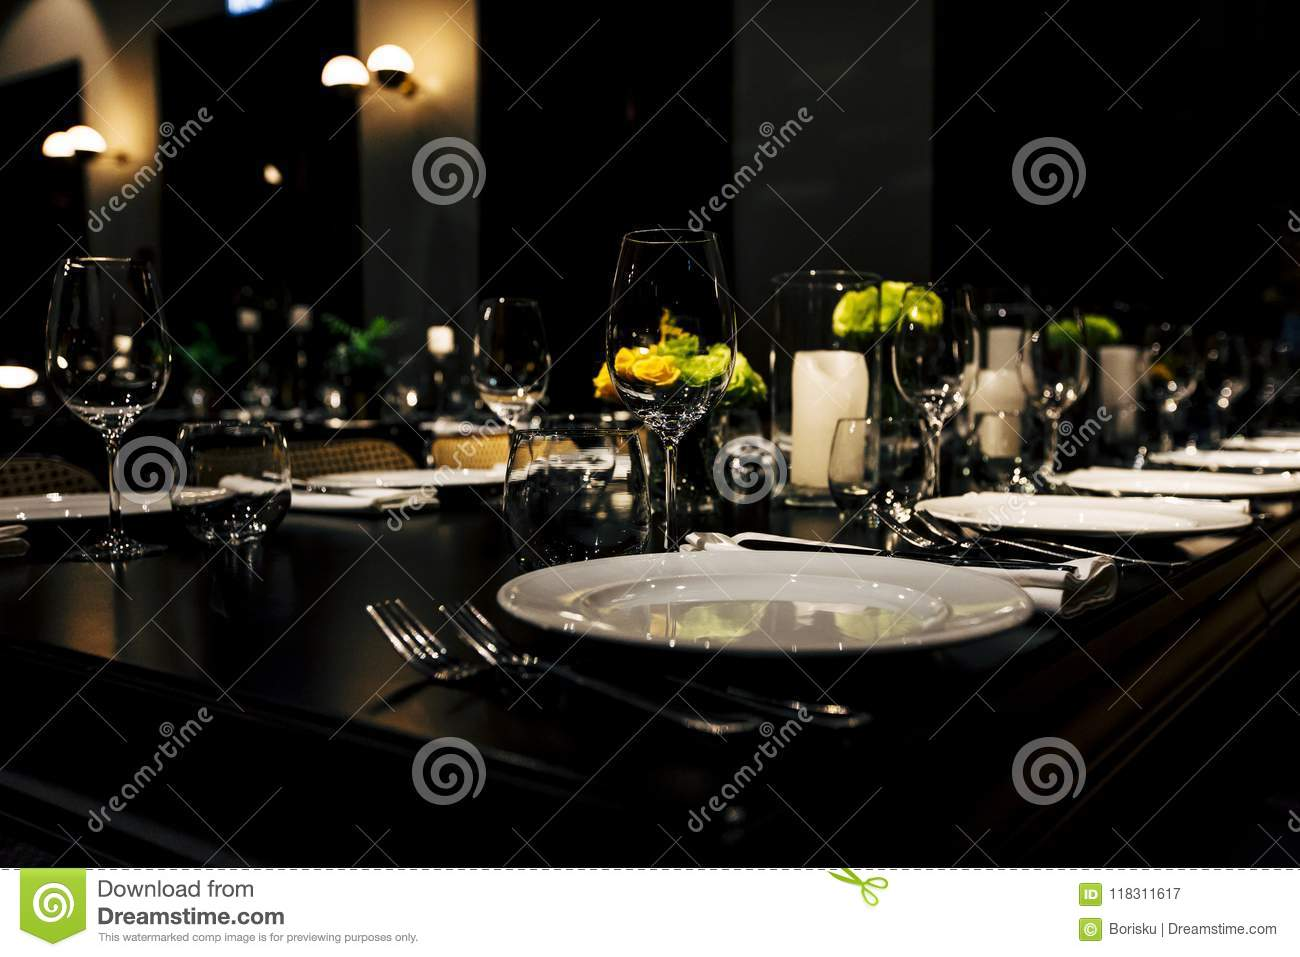 Luxury Table setting for weddings and social events.